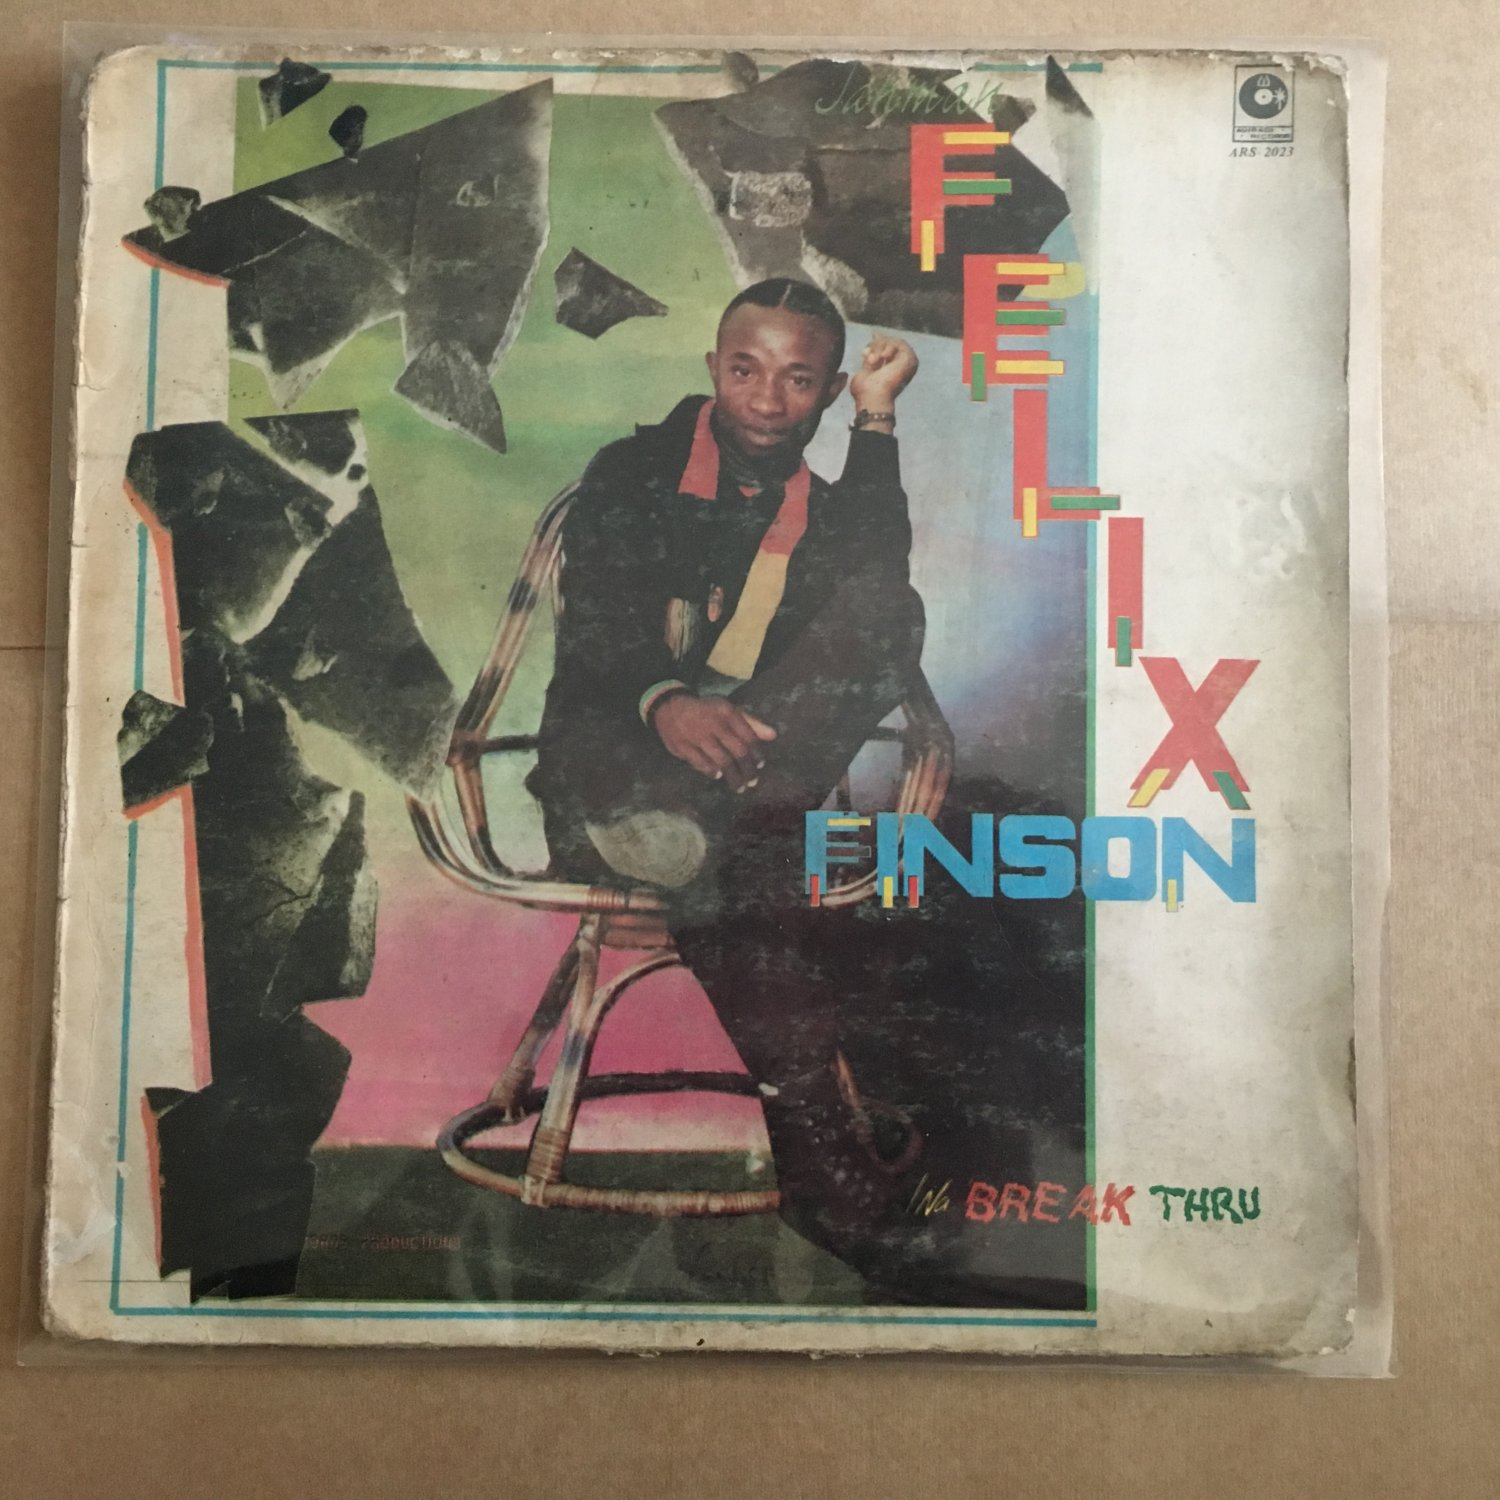 FELIX FINSON LP break thru NIGERIA REGGAE mp3 LISTEN